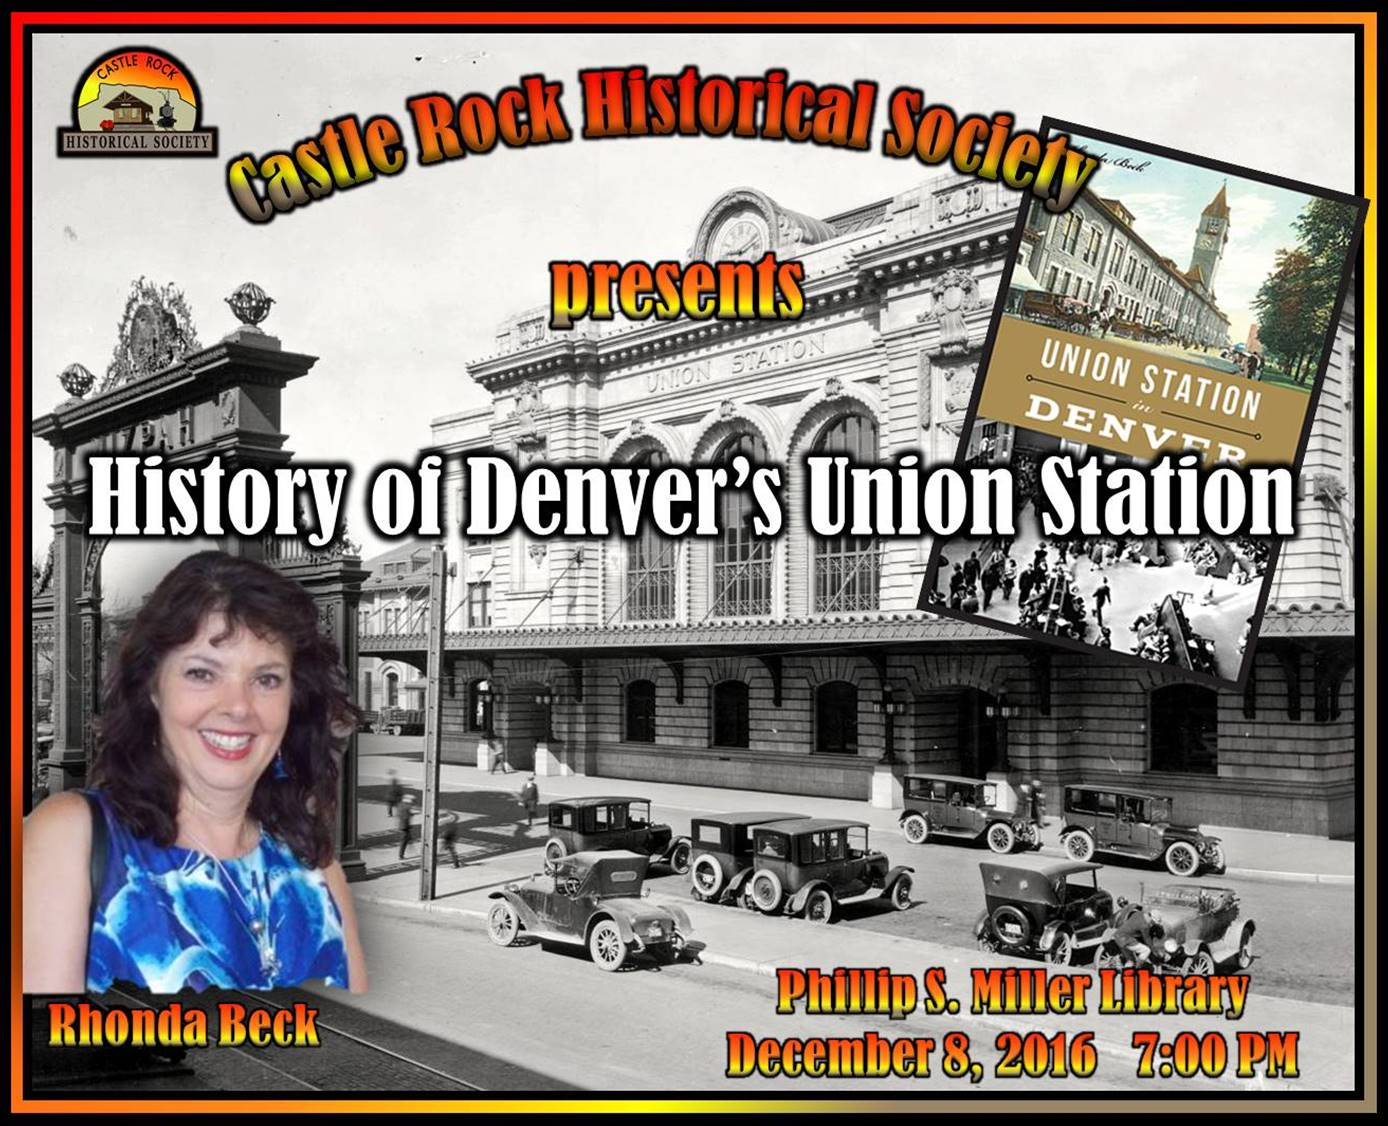 history-of-denvers-union-station-crhs-12-2016